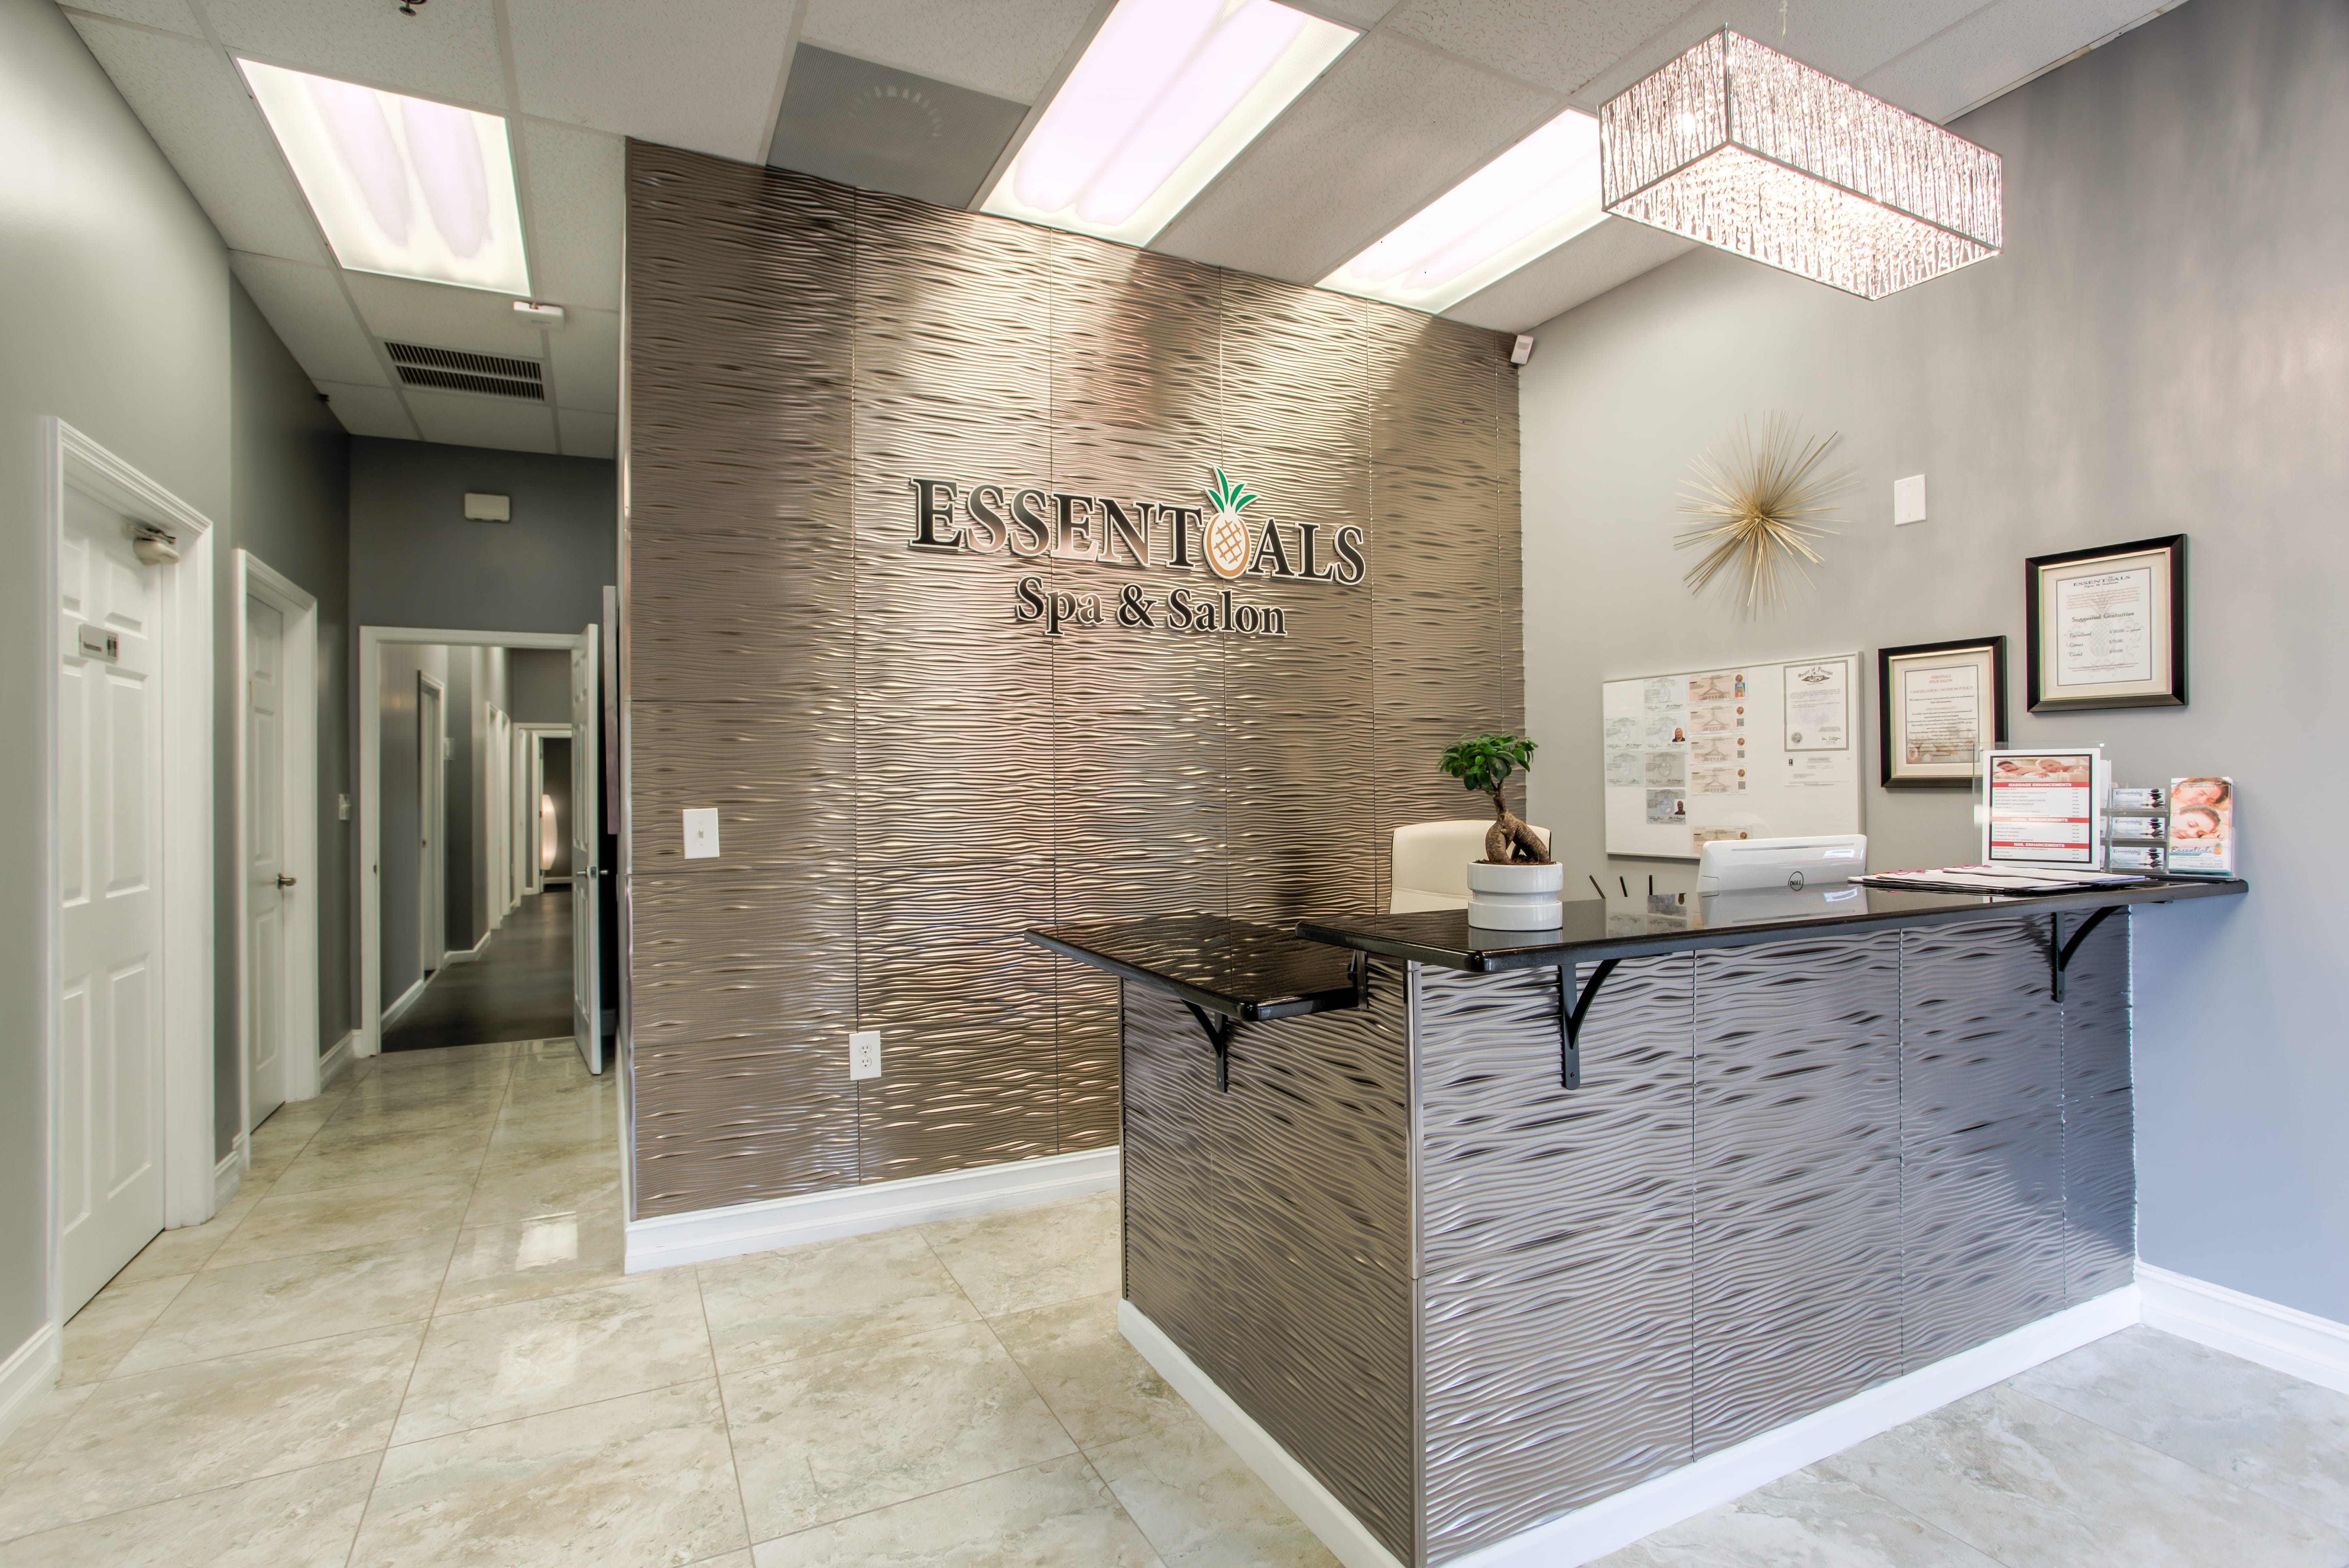 Essentials Spa And Salon Metrowest